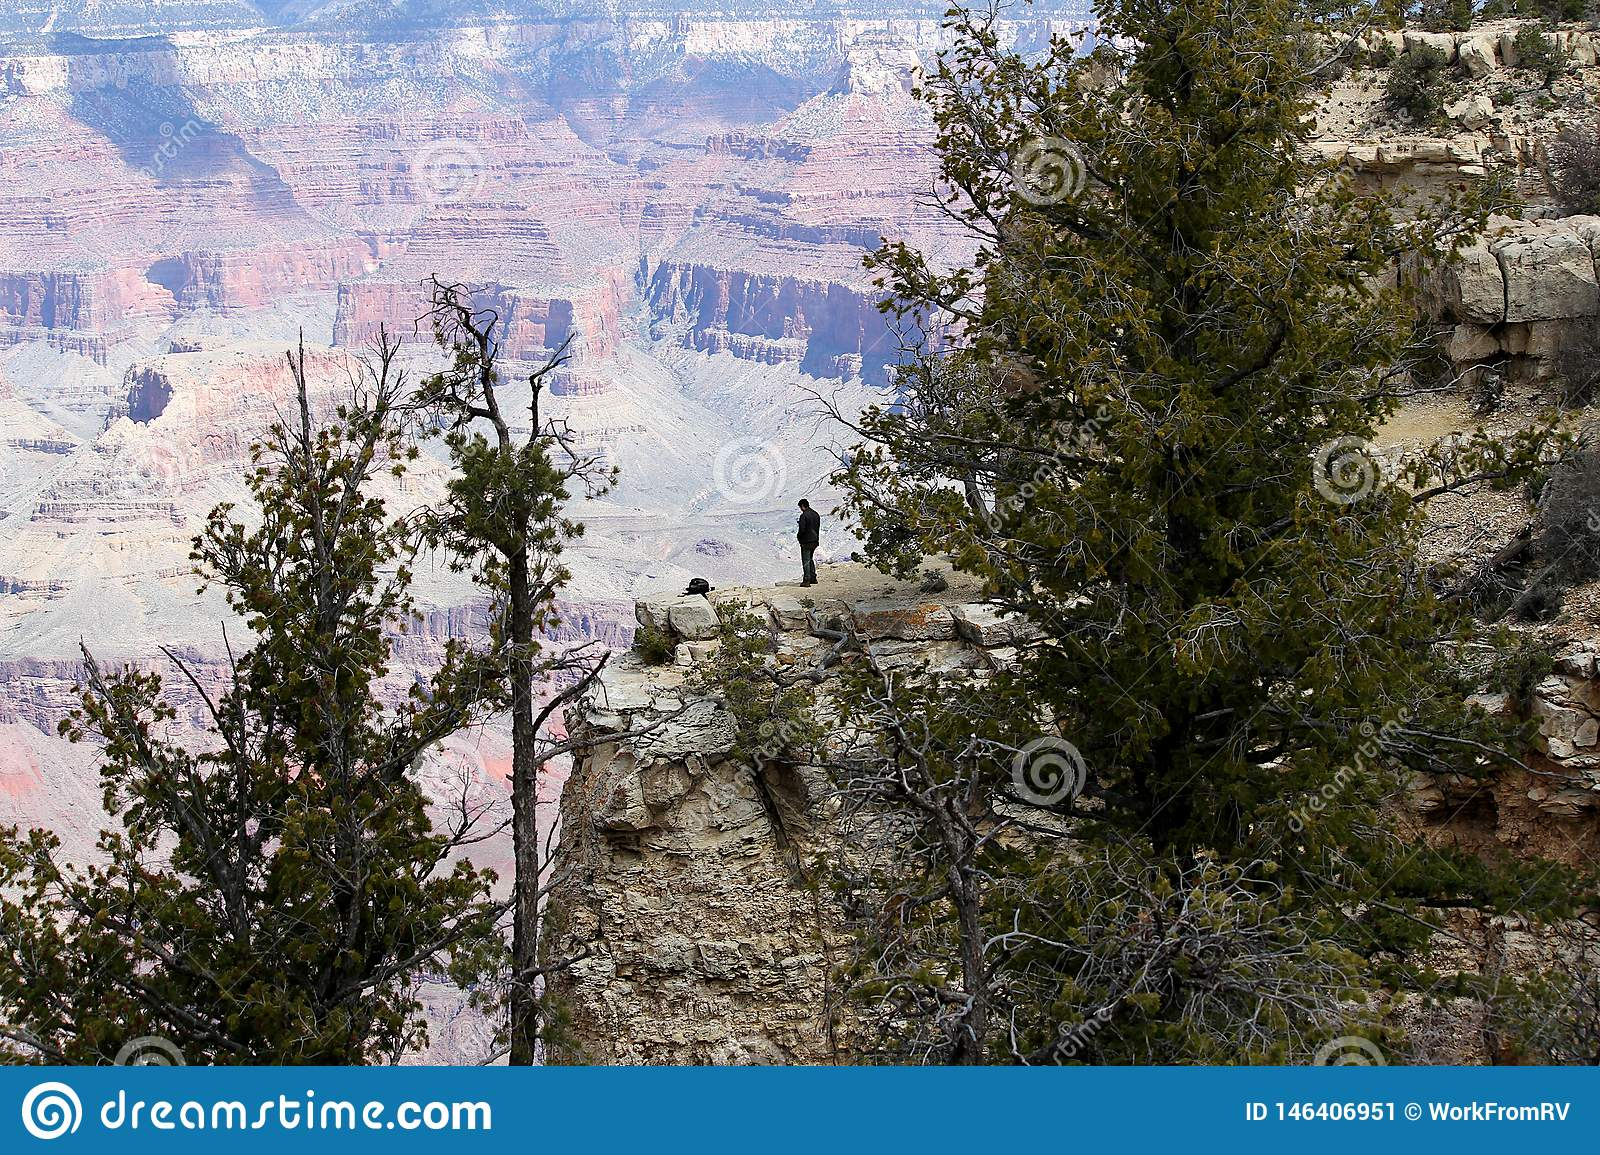 Man standing on the south rim of the Grand Canyon.